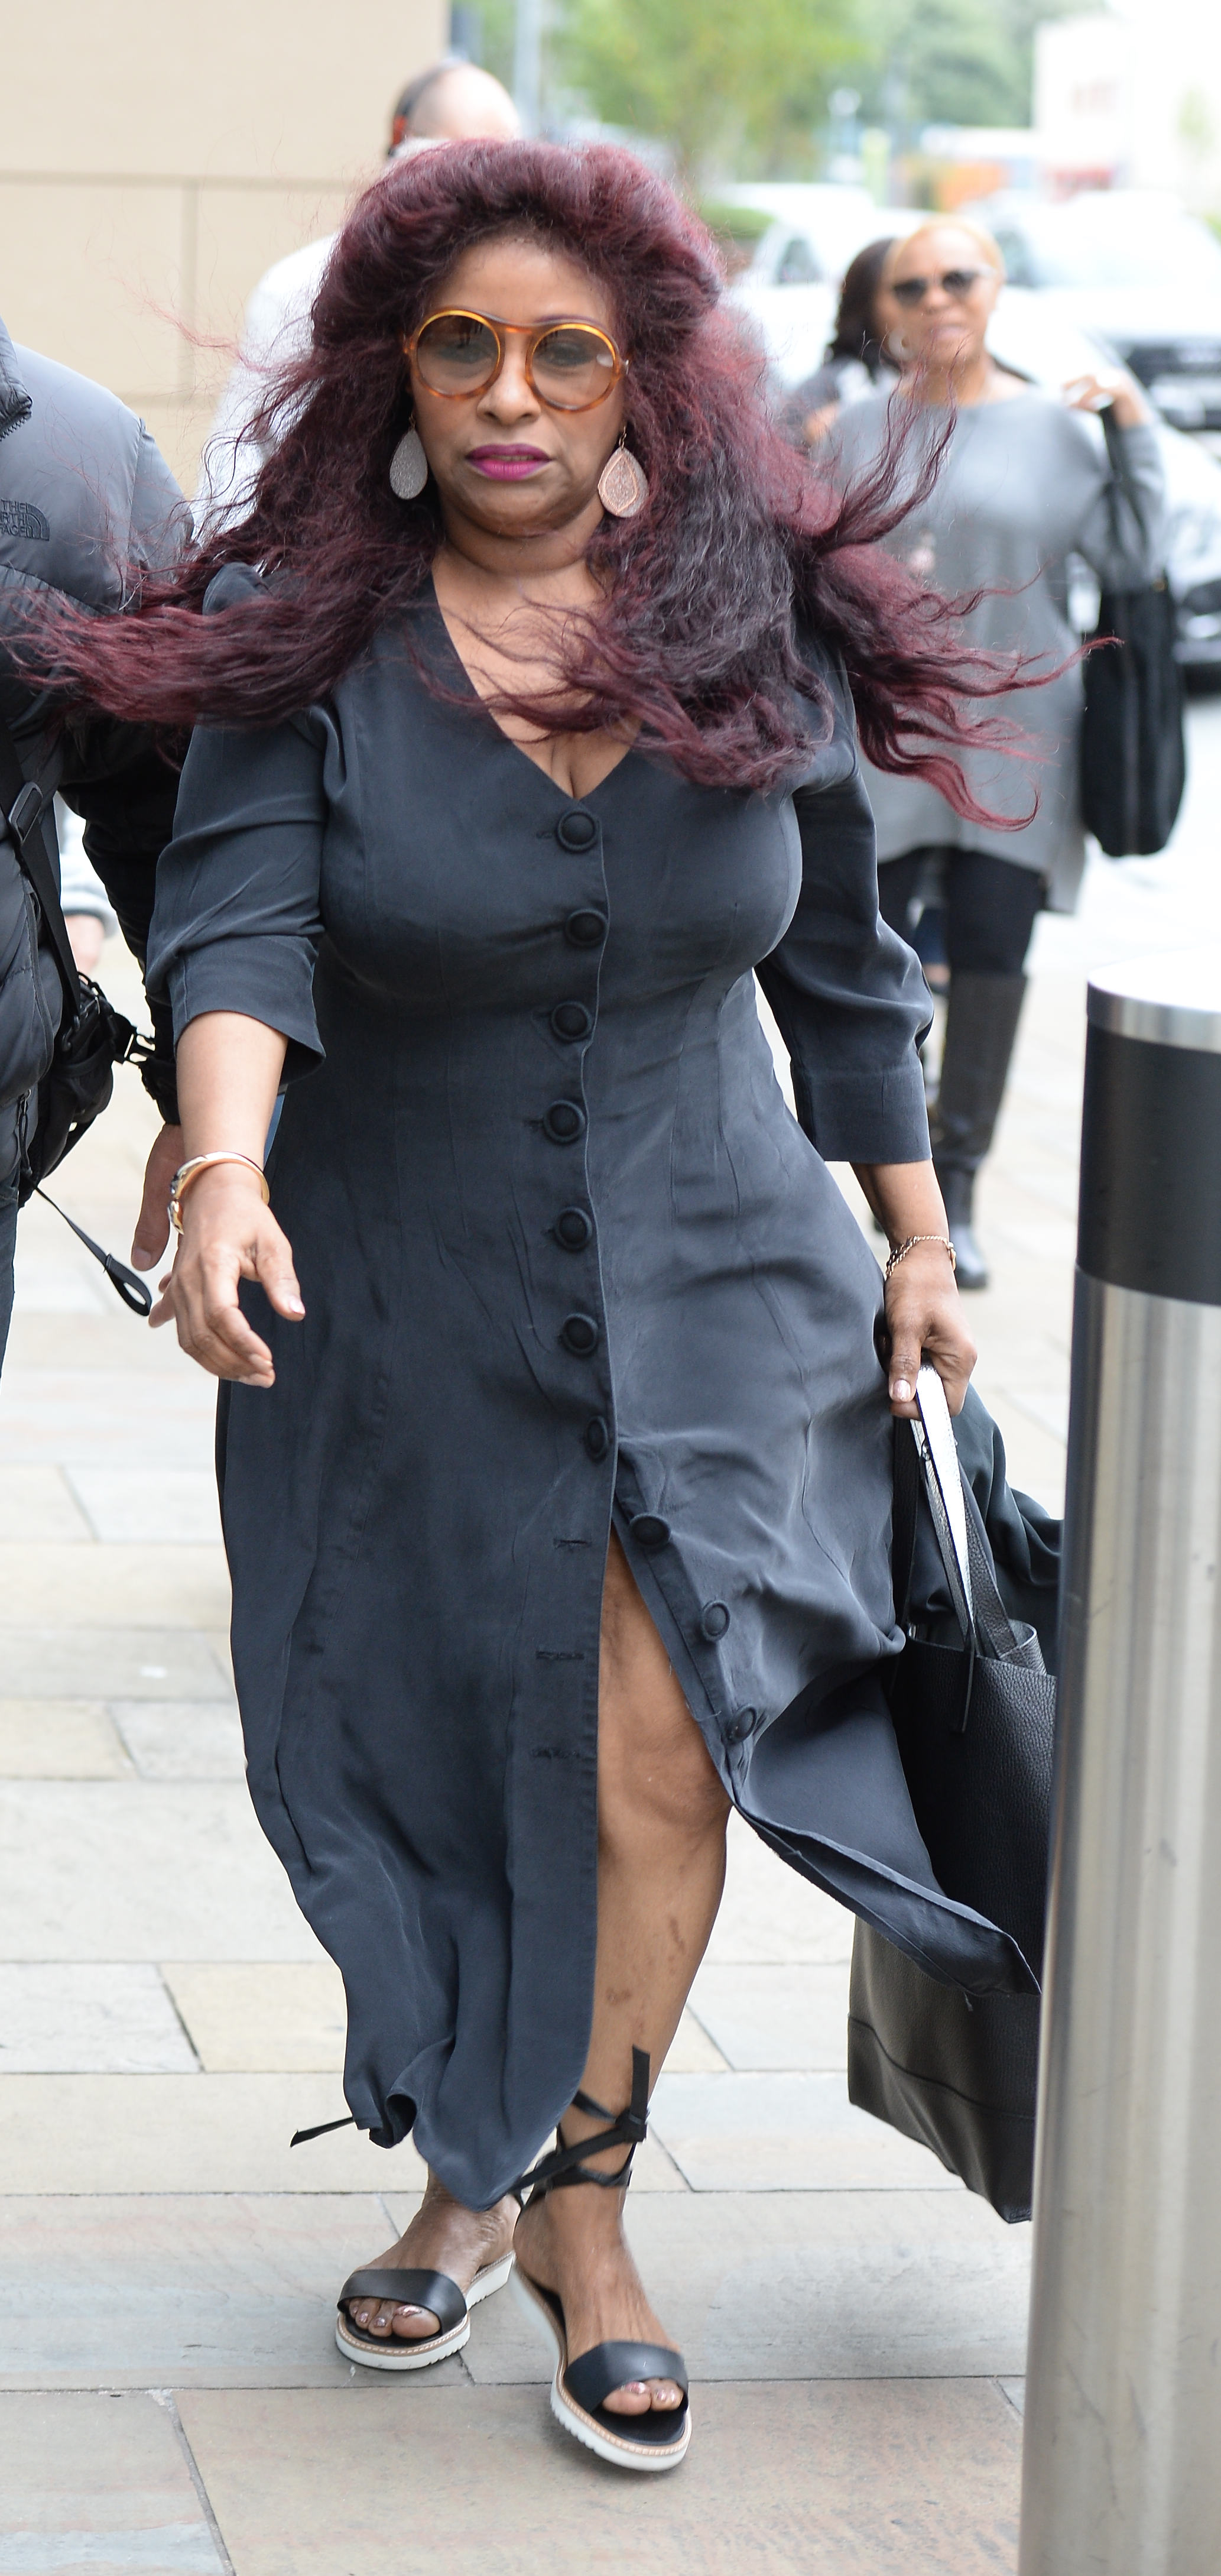 Chaka Khan arrives at Dock 10 Media City Manchester to for the 'Pitch Battle Live Final'Featuring: Chaka KhanWhere: Manchester, United KingdomWhen: 22 Jul 2017Credit: Steve Searle/WENN.com